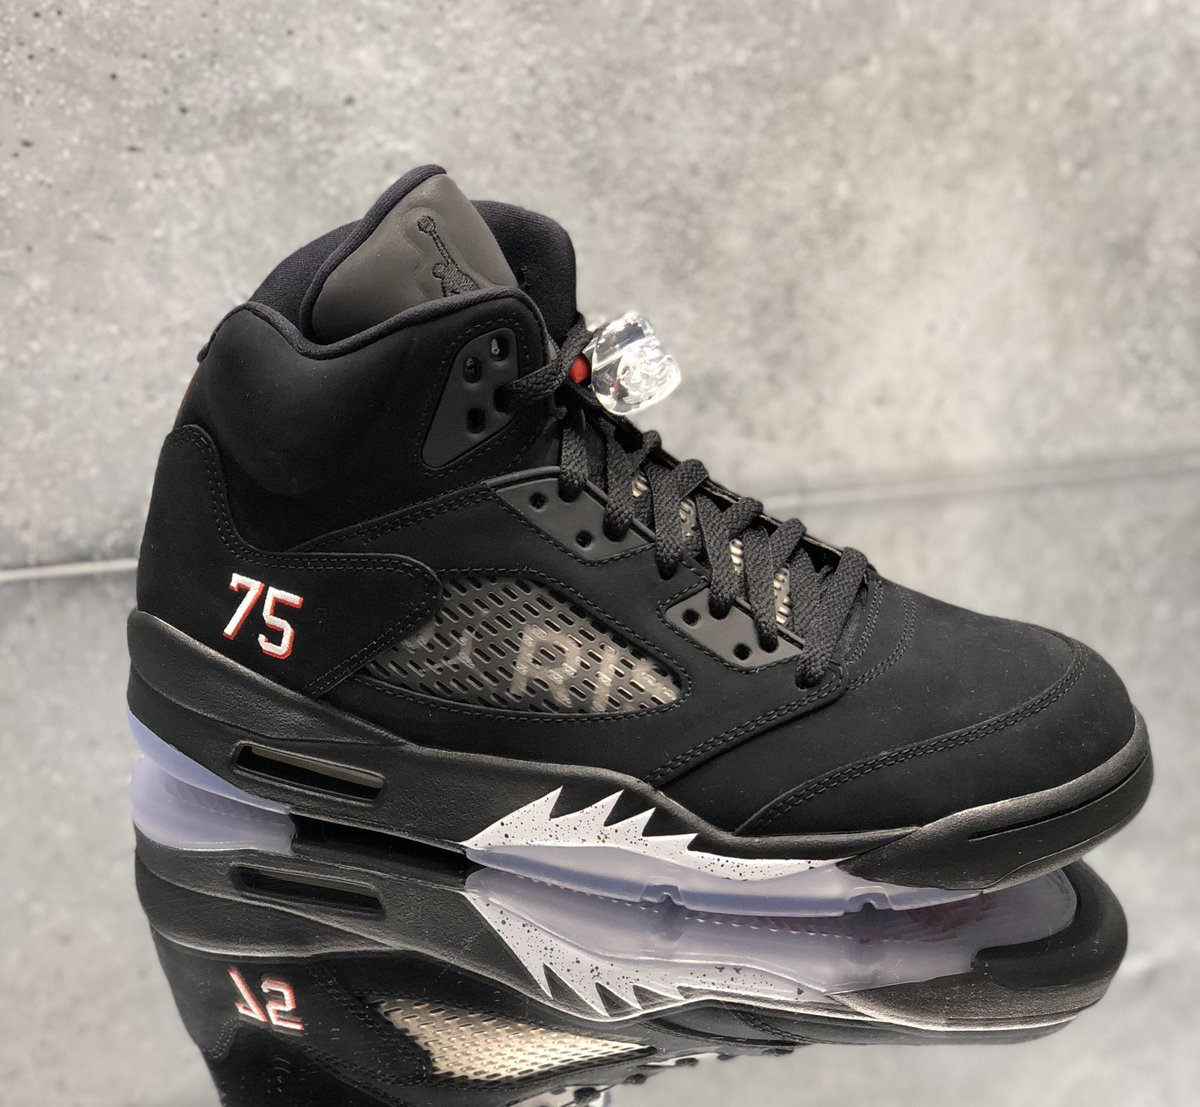 41e9e00bba59 Jordan Brand has signed  PSG inside to a three-year deal. The first  collection